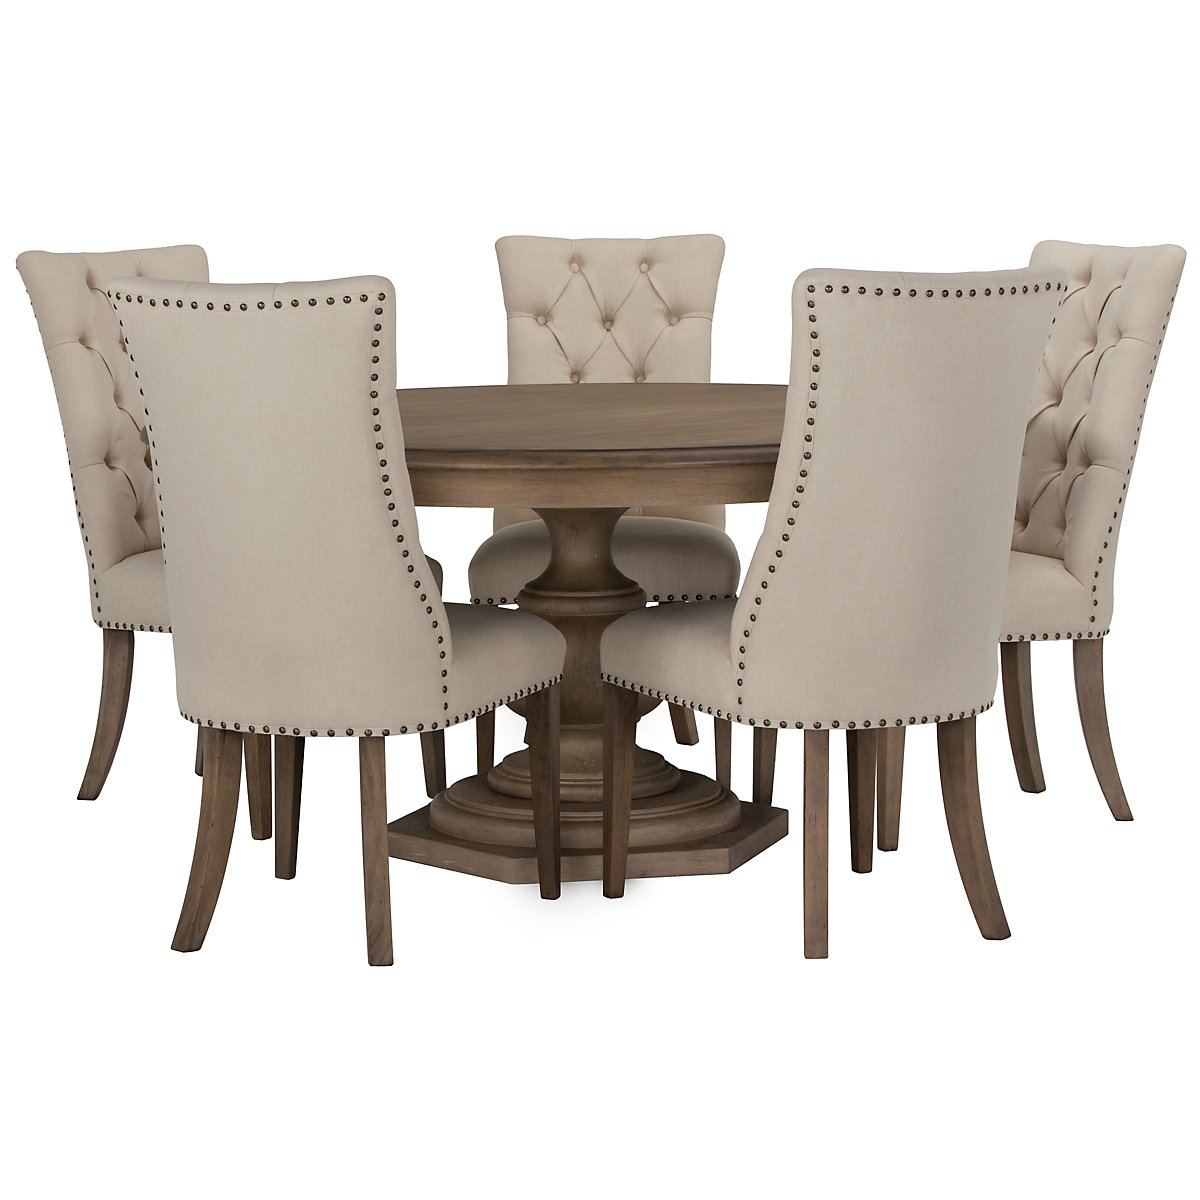 City furniture haddie light tone round table 4 for Round dining room table sets